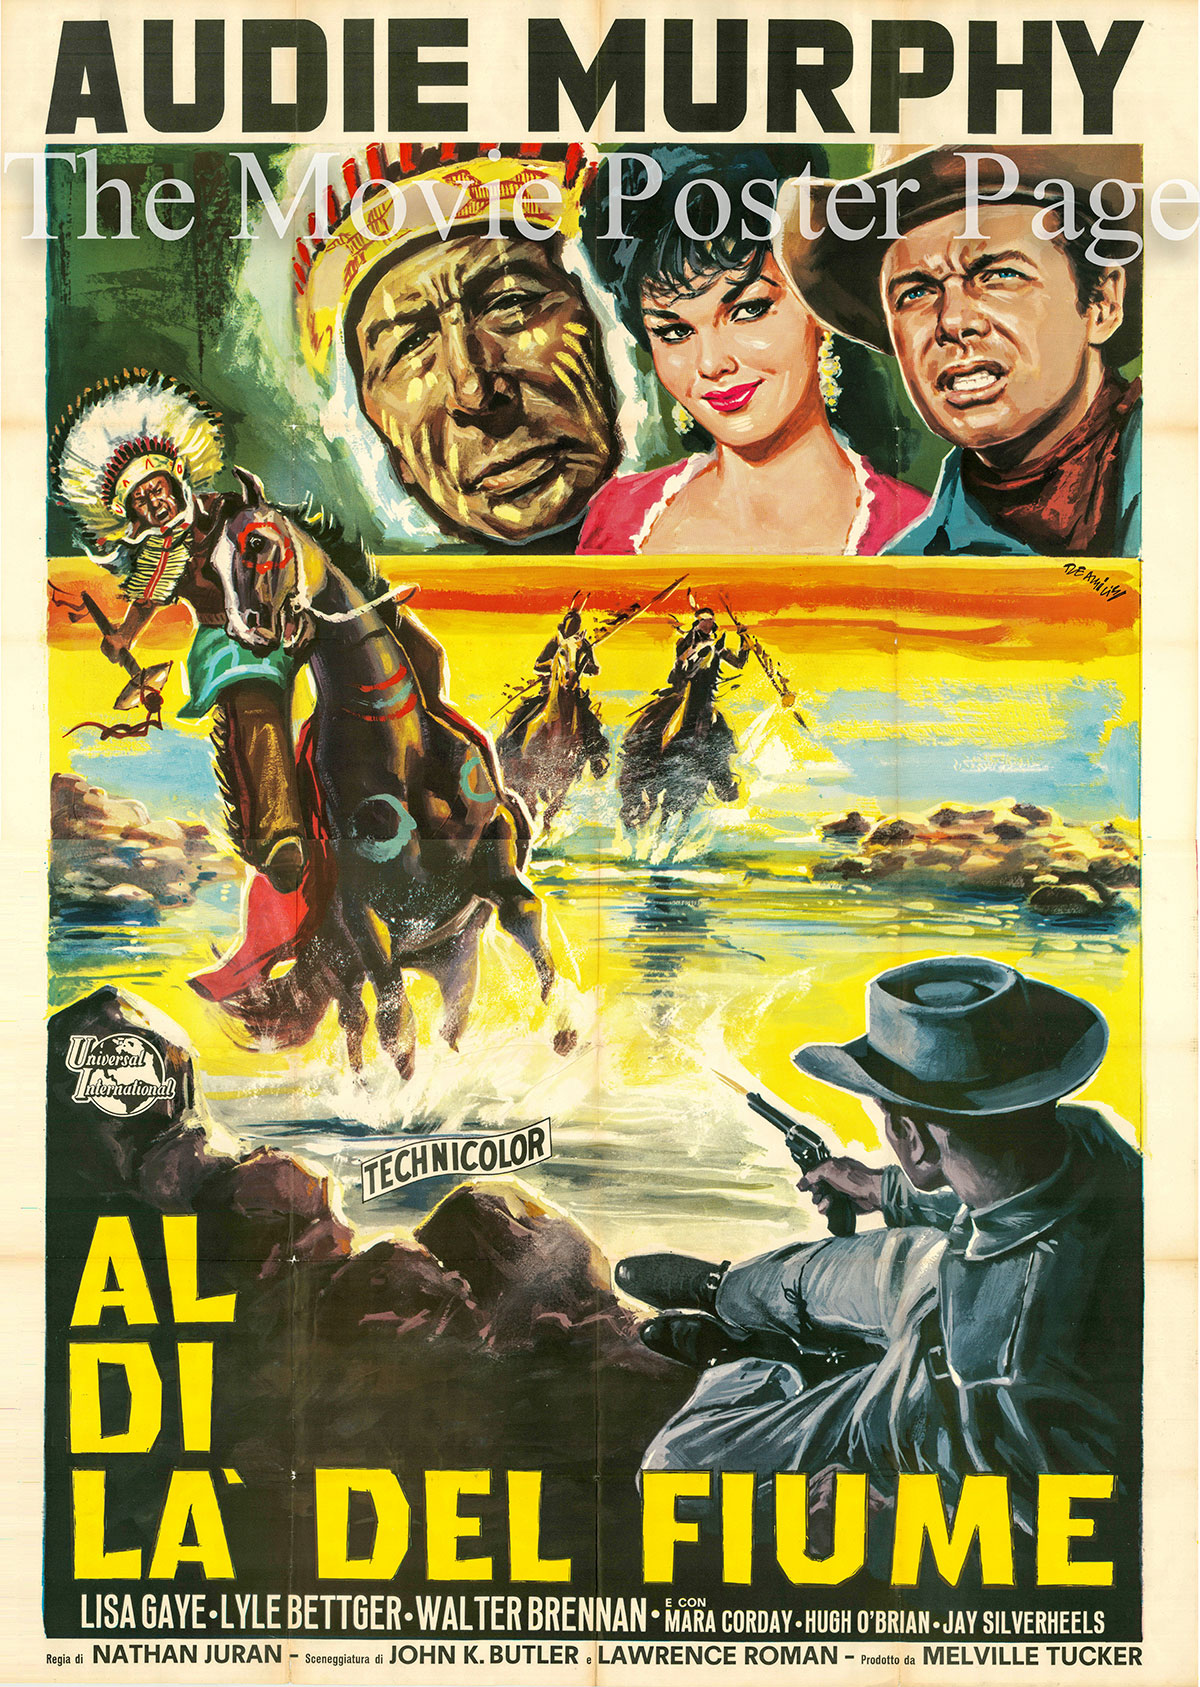 Pictured is an Italian four-sheet promotional poster for the 1954 Nathan Juran film Drums Across the River starring Audie Murphy.